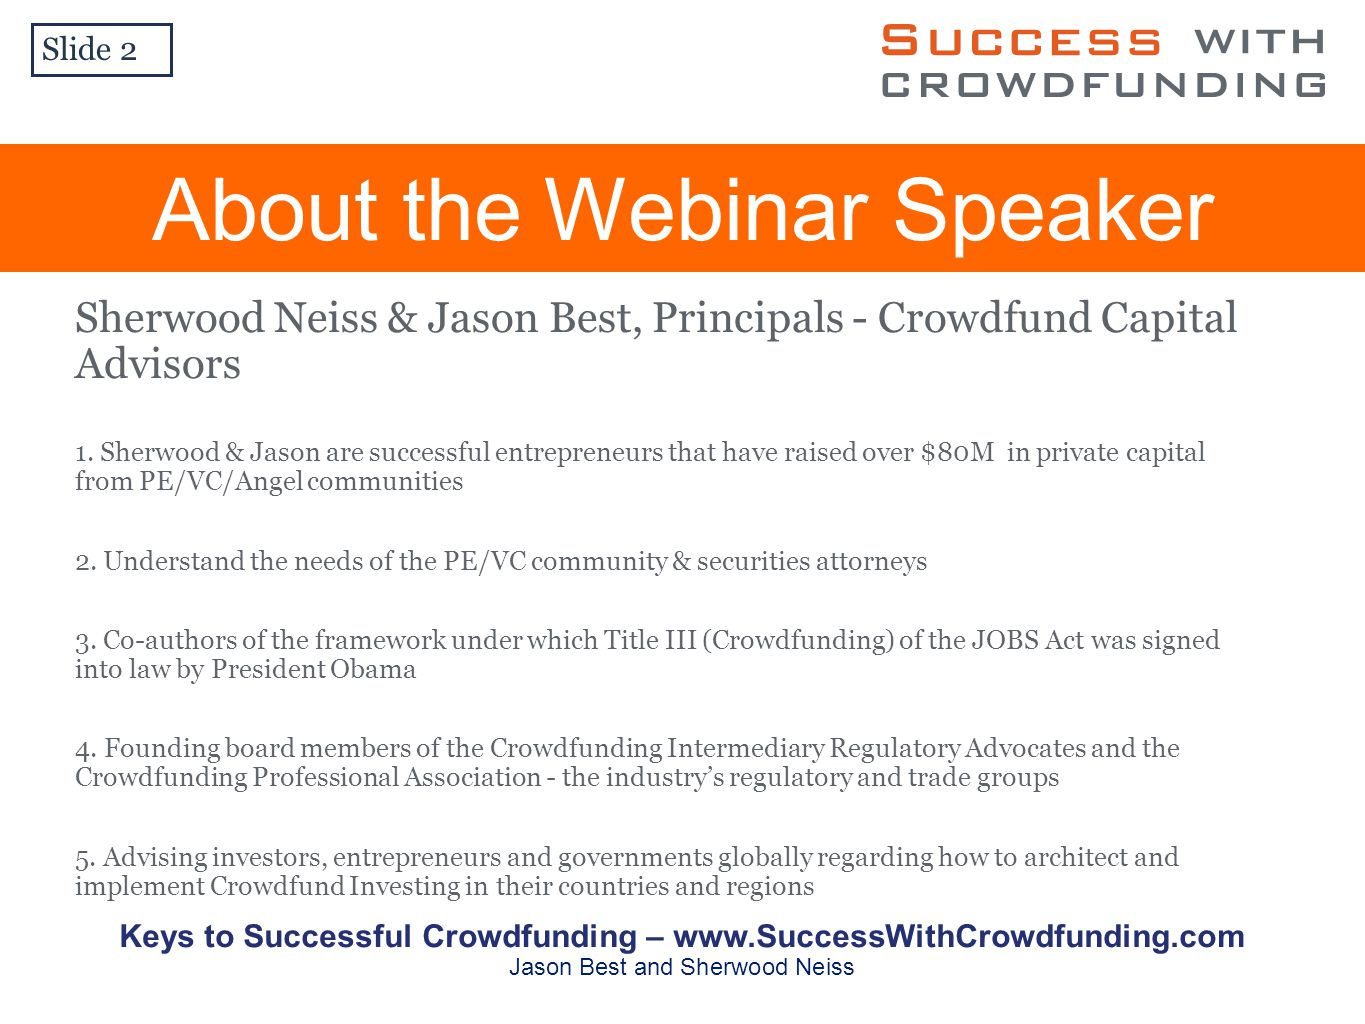 Slide 2 Keys to Successful Crowdfunding –   Jason Best and Sherwood Neiss About the Webinar Speaker Sherwood Neiss & Jason Best, Principals - Crowdfund Capital Advisors 1.